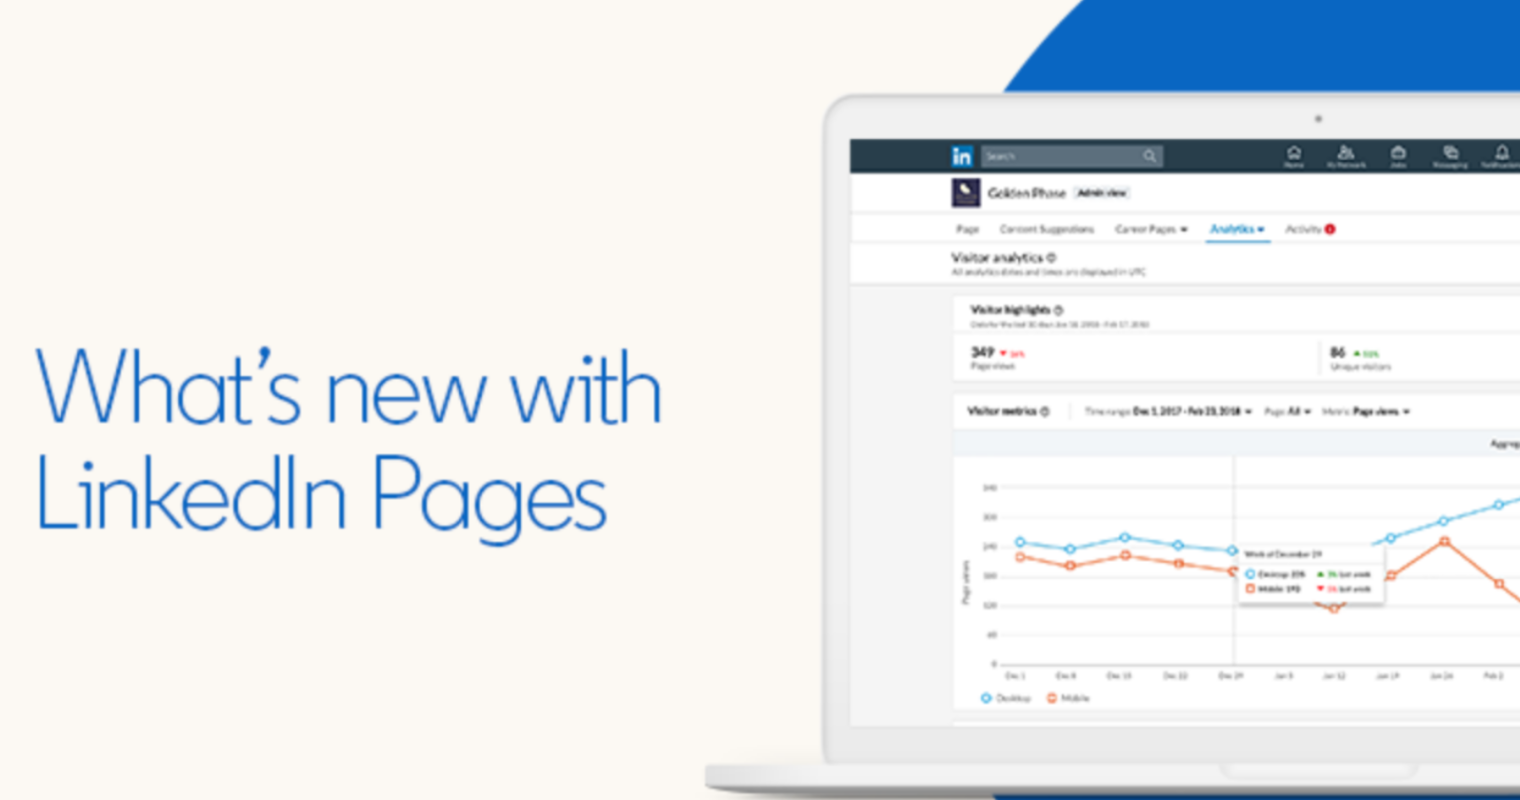 LinkedIn Introduces a New Way for Pages to Generate Leads